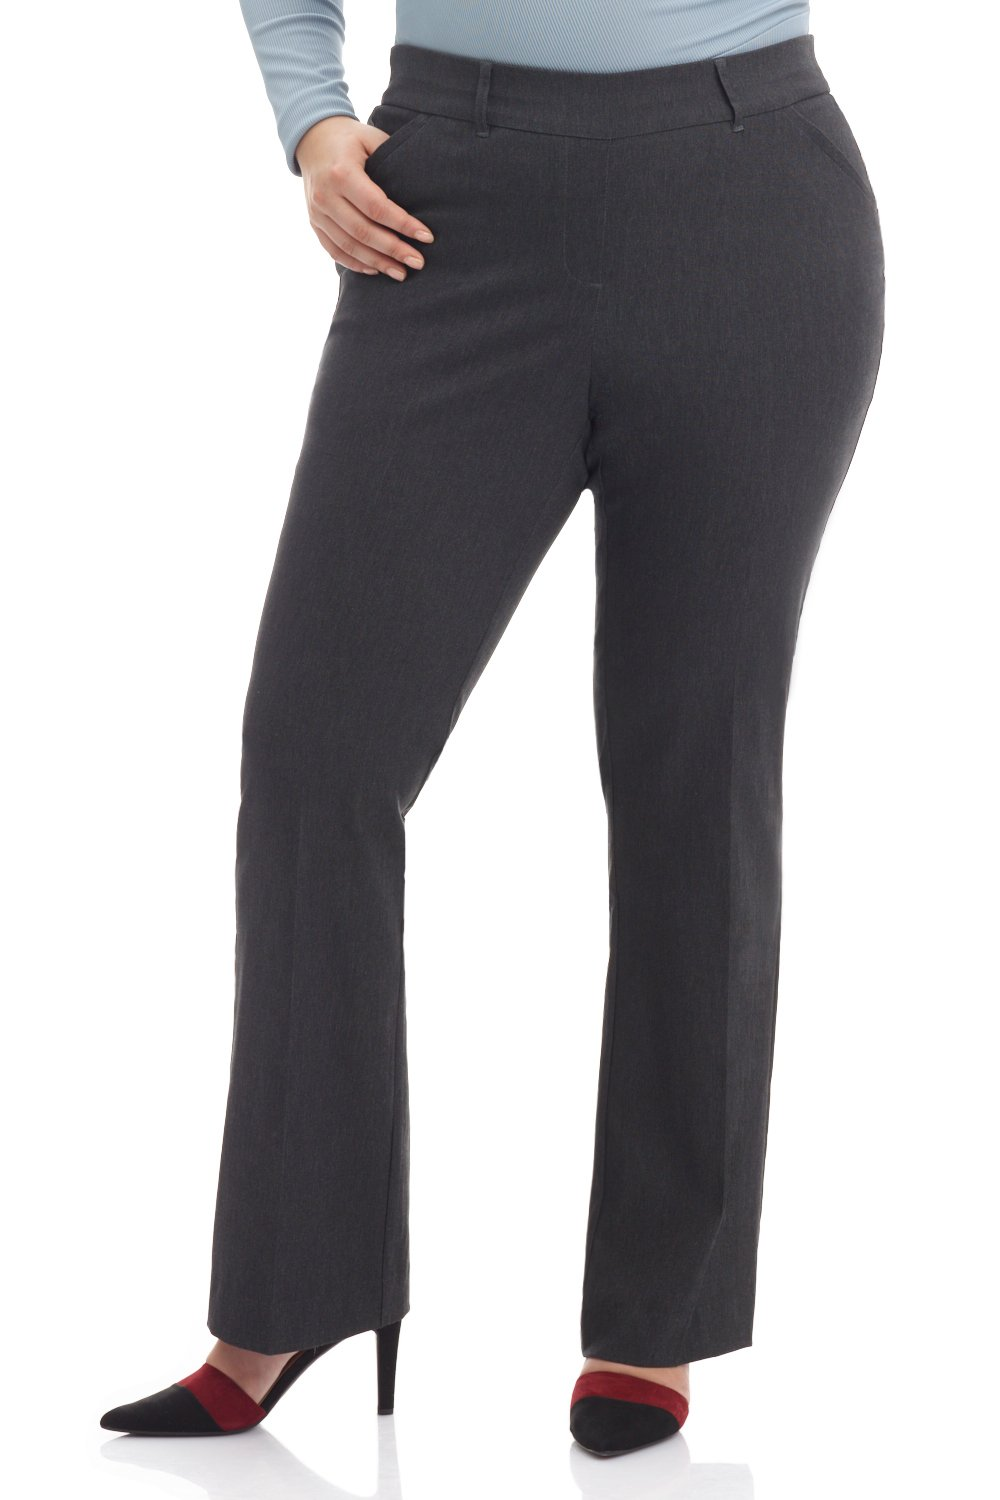 REKUCCI Curvy Woman Ease In To Comfort Fit Barely Bootcut Plus Size Pant (20WSHORT,Dk Charcoal)